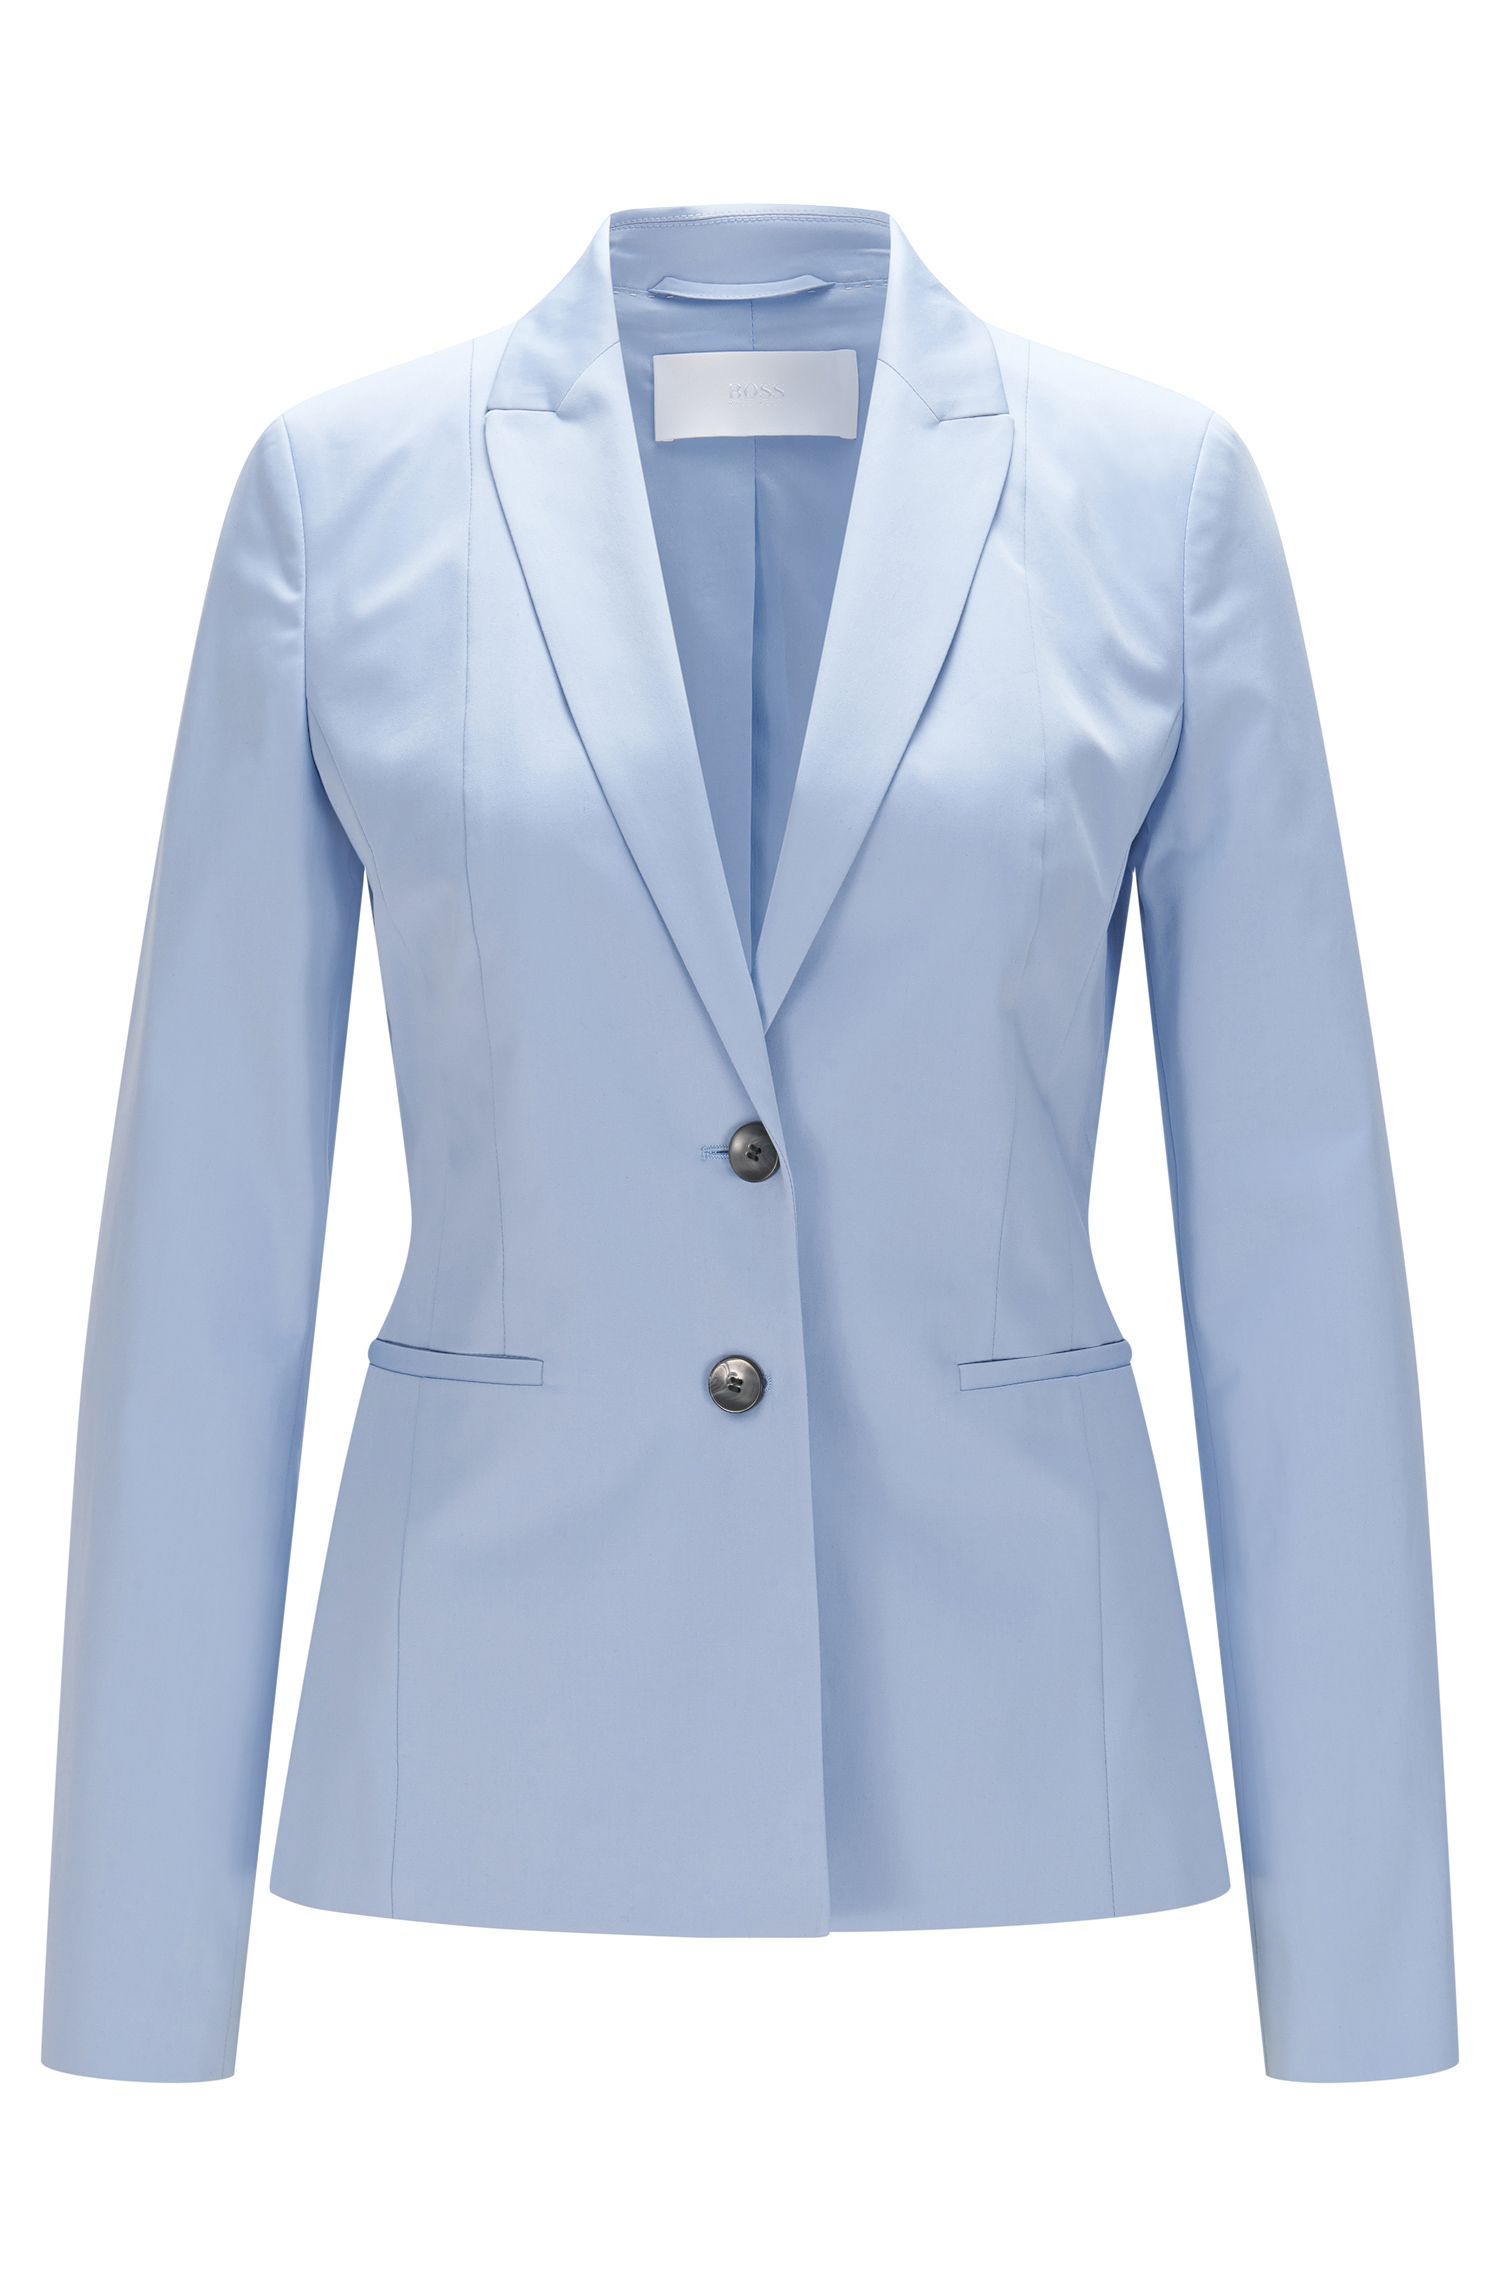 'Jelany' | Tailored Stretch Cotton Blazer